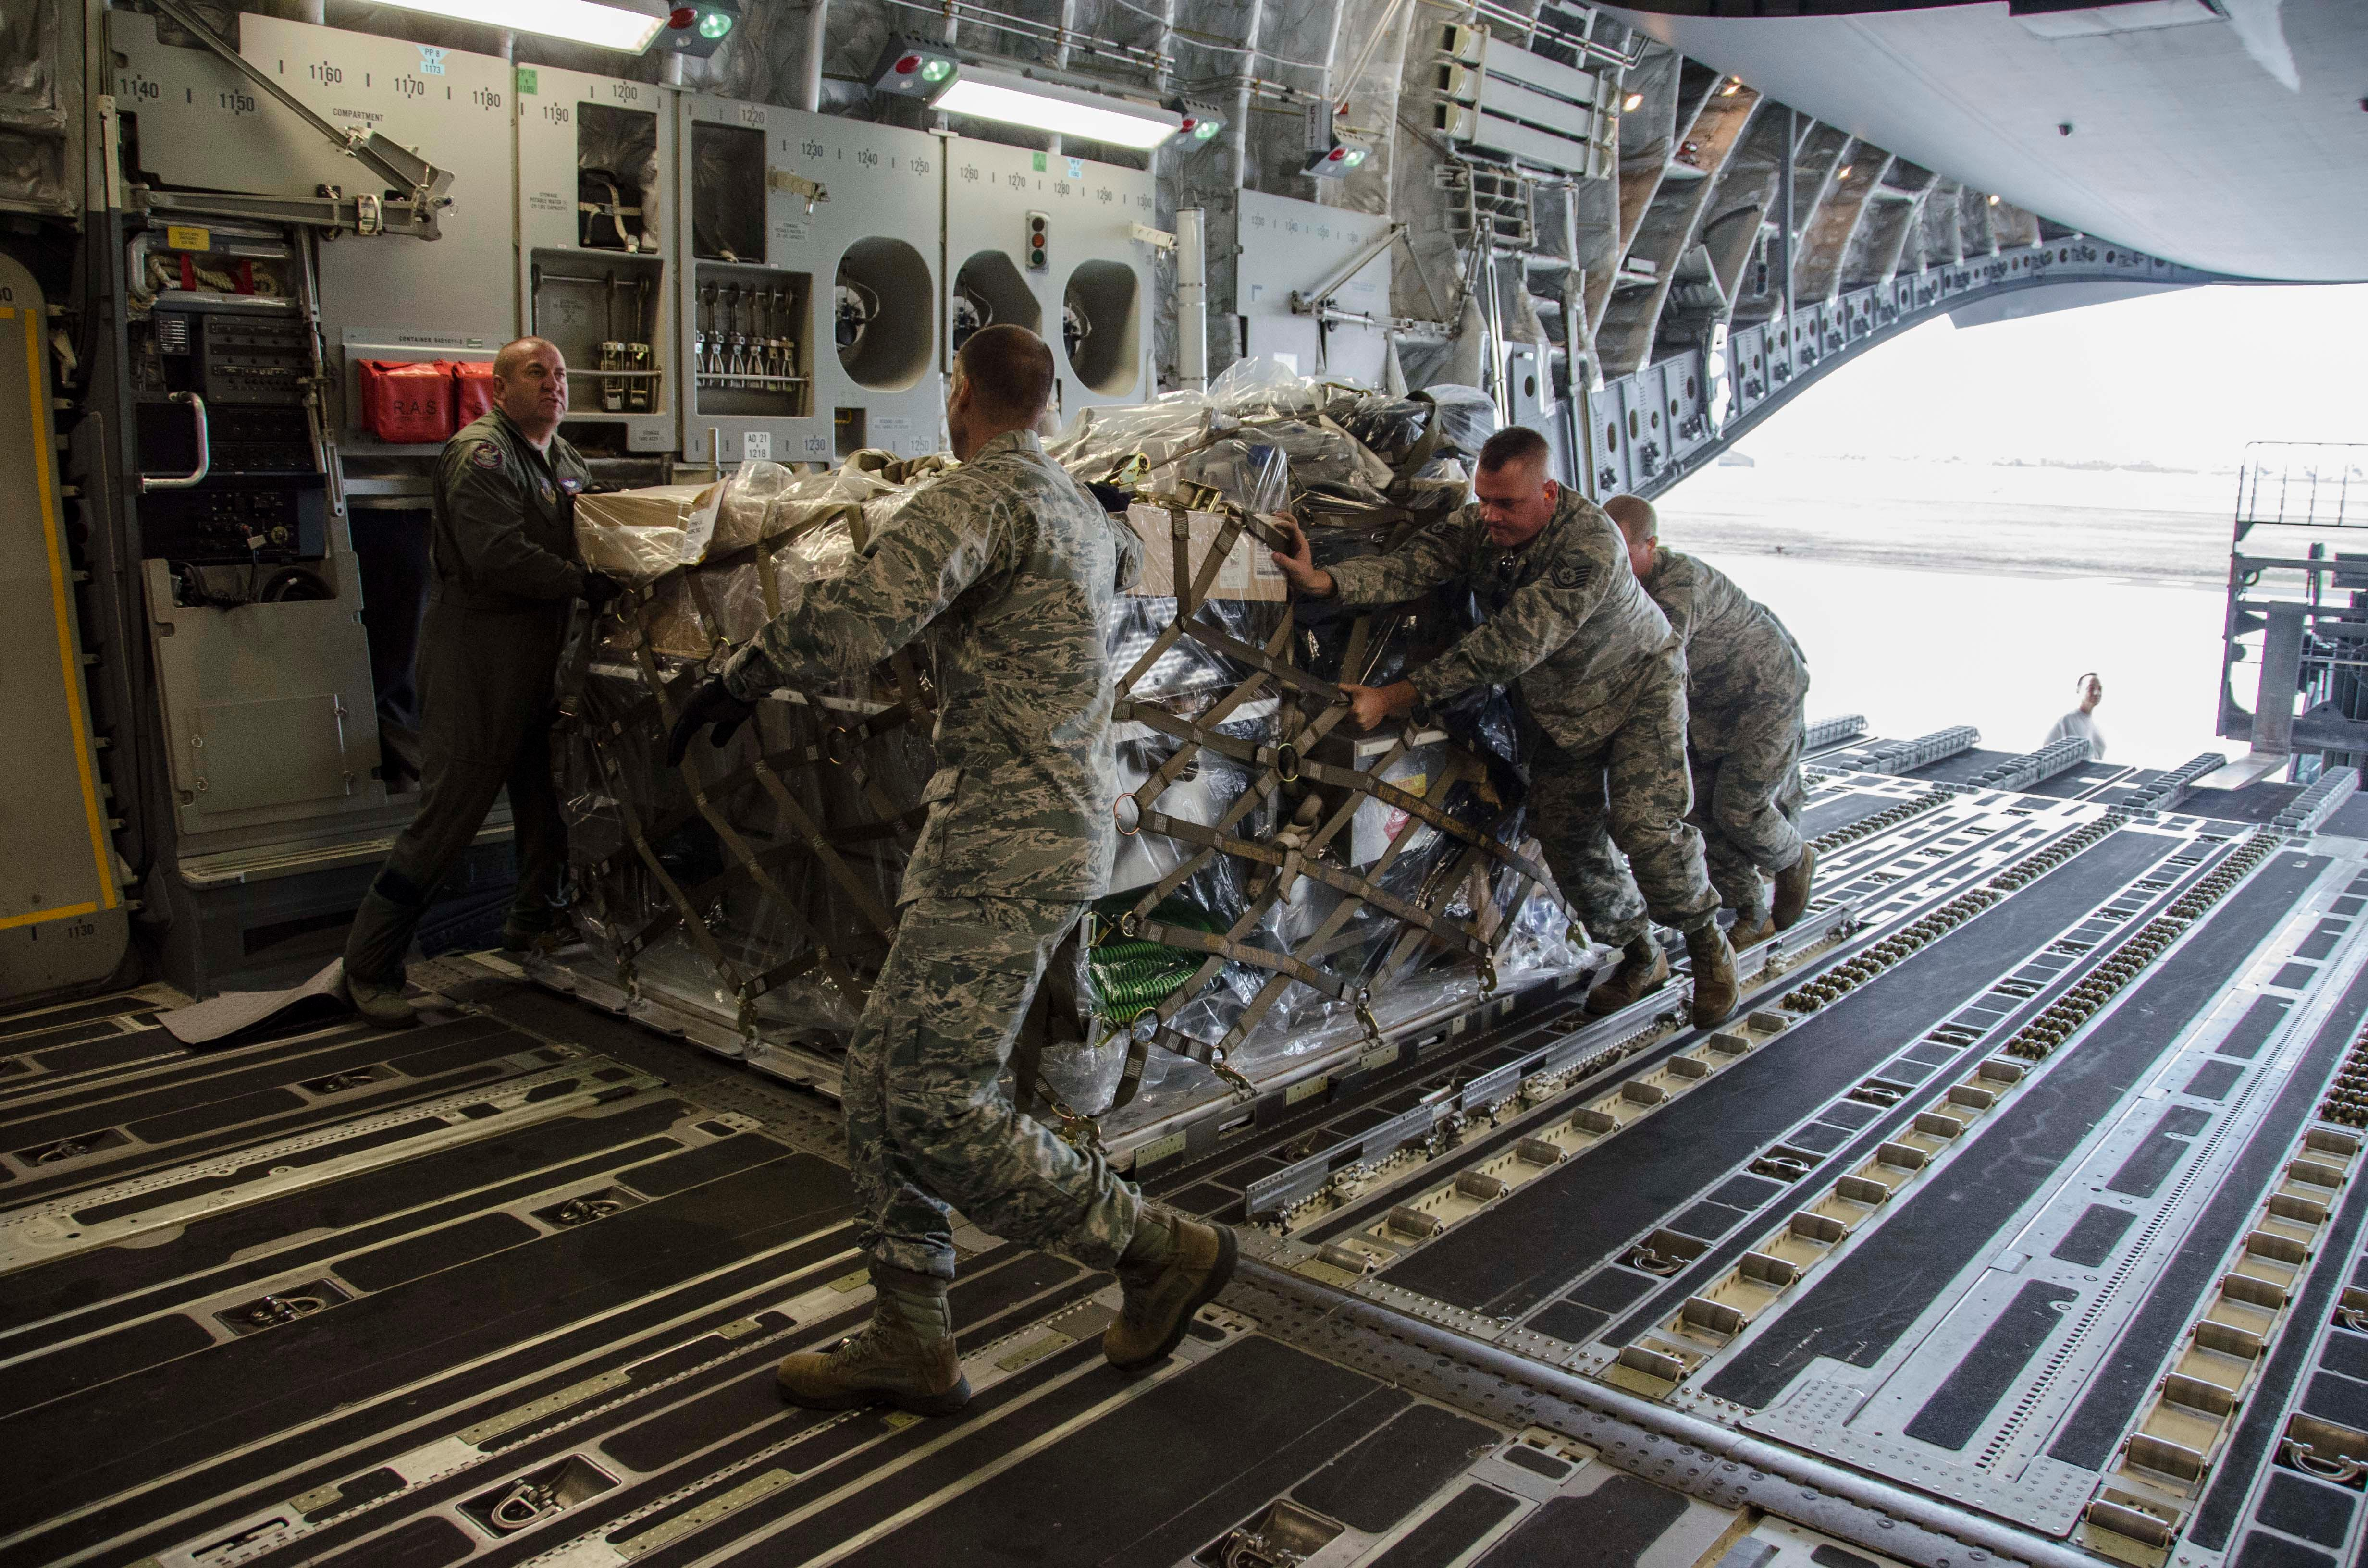 A C-17 Globemaster cargo aircraft from the Mississippi Air National Guard is loaded with supplies as part of the support package from the Wisconsin Air National Guard heading to Puerto Rico for disaster relief Sept. 29, 2017. (Wisconsin Air National Guard photo by Master Sgt. Kellen Kroening/Released)